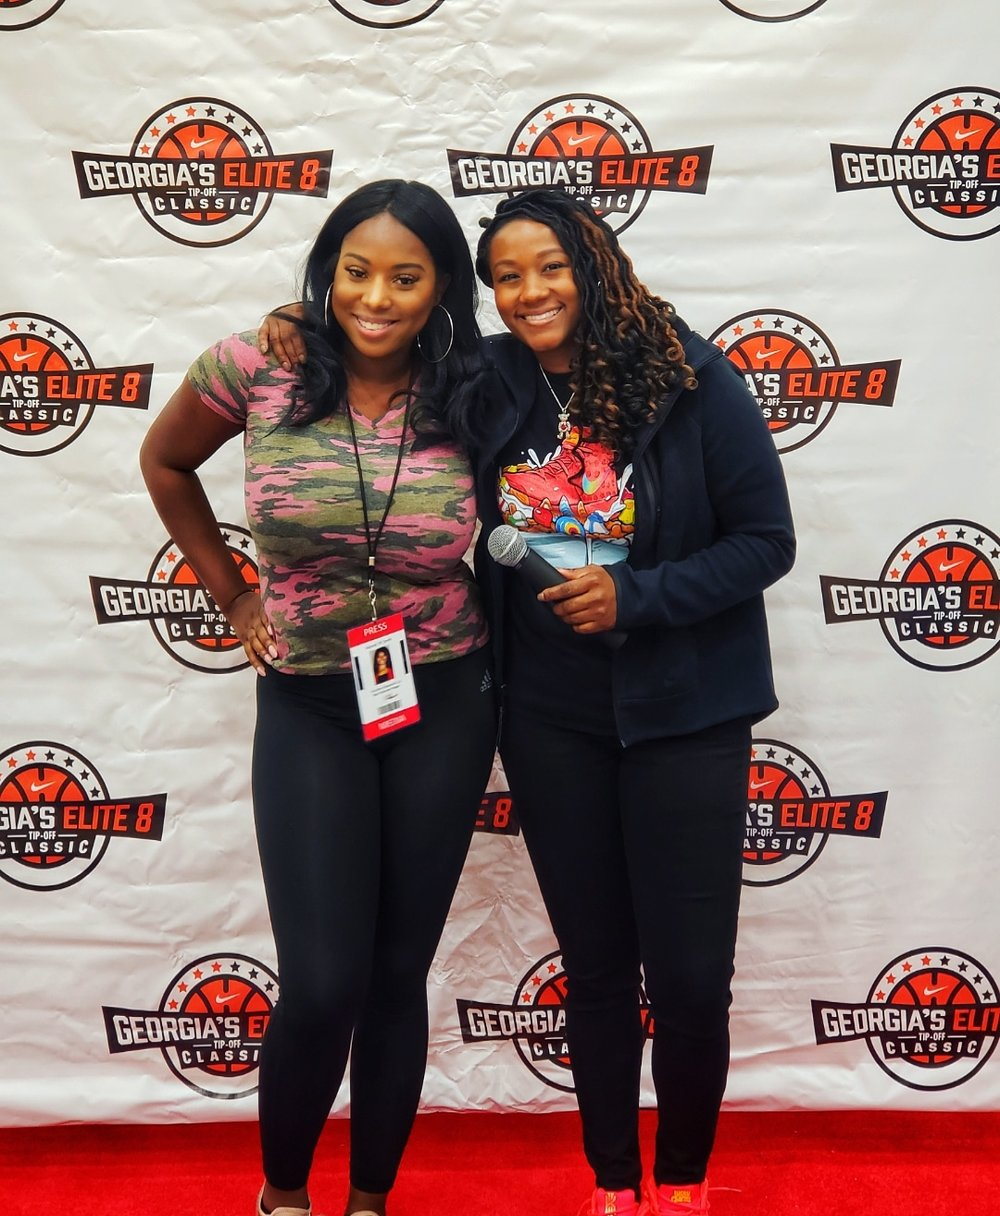 Georgia's Elite 8 Tip Off Classic - Red Carpet with Voice of Atlanta Basketball Bria Janelle